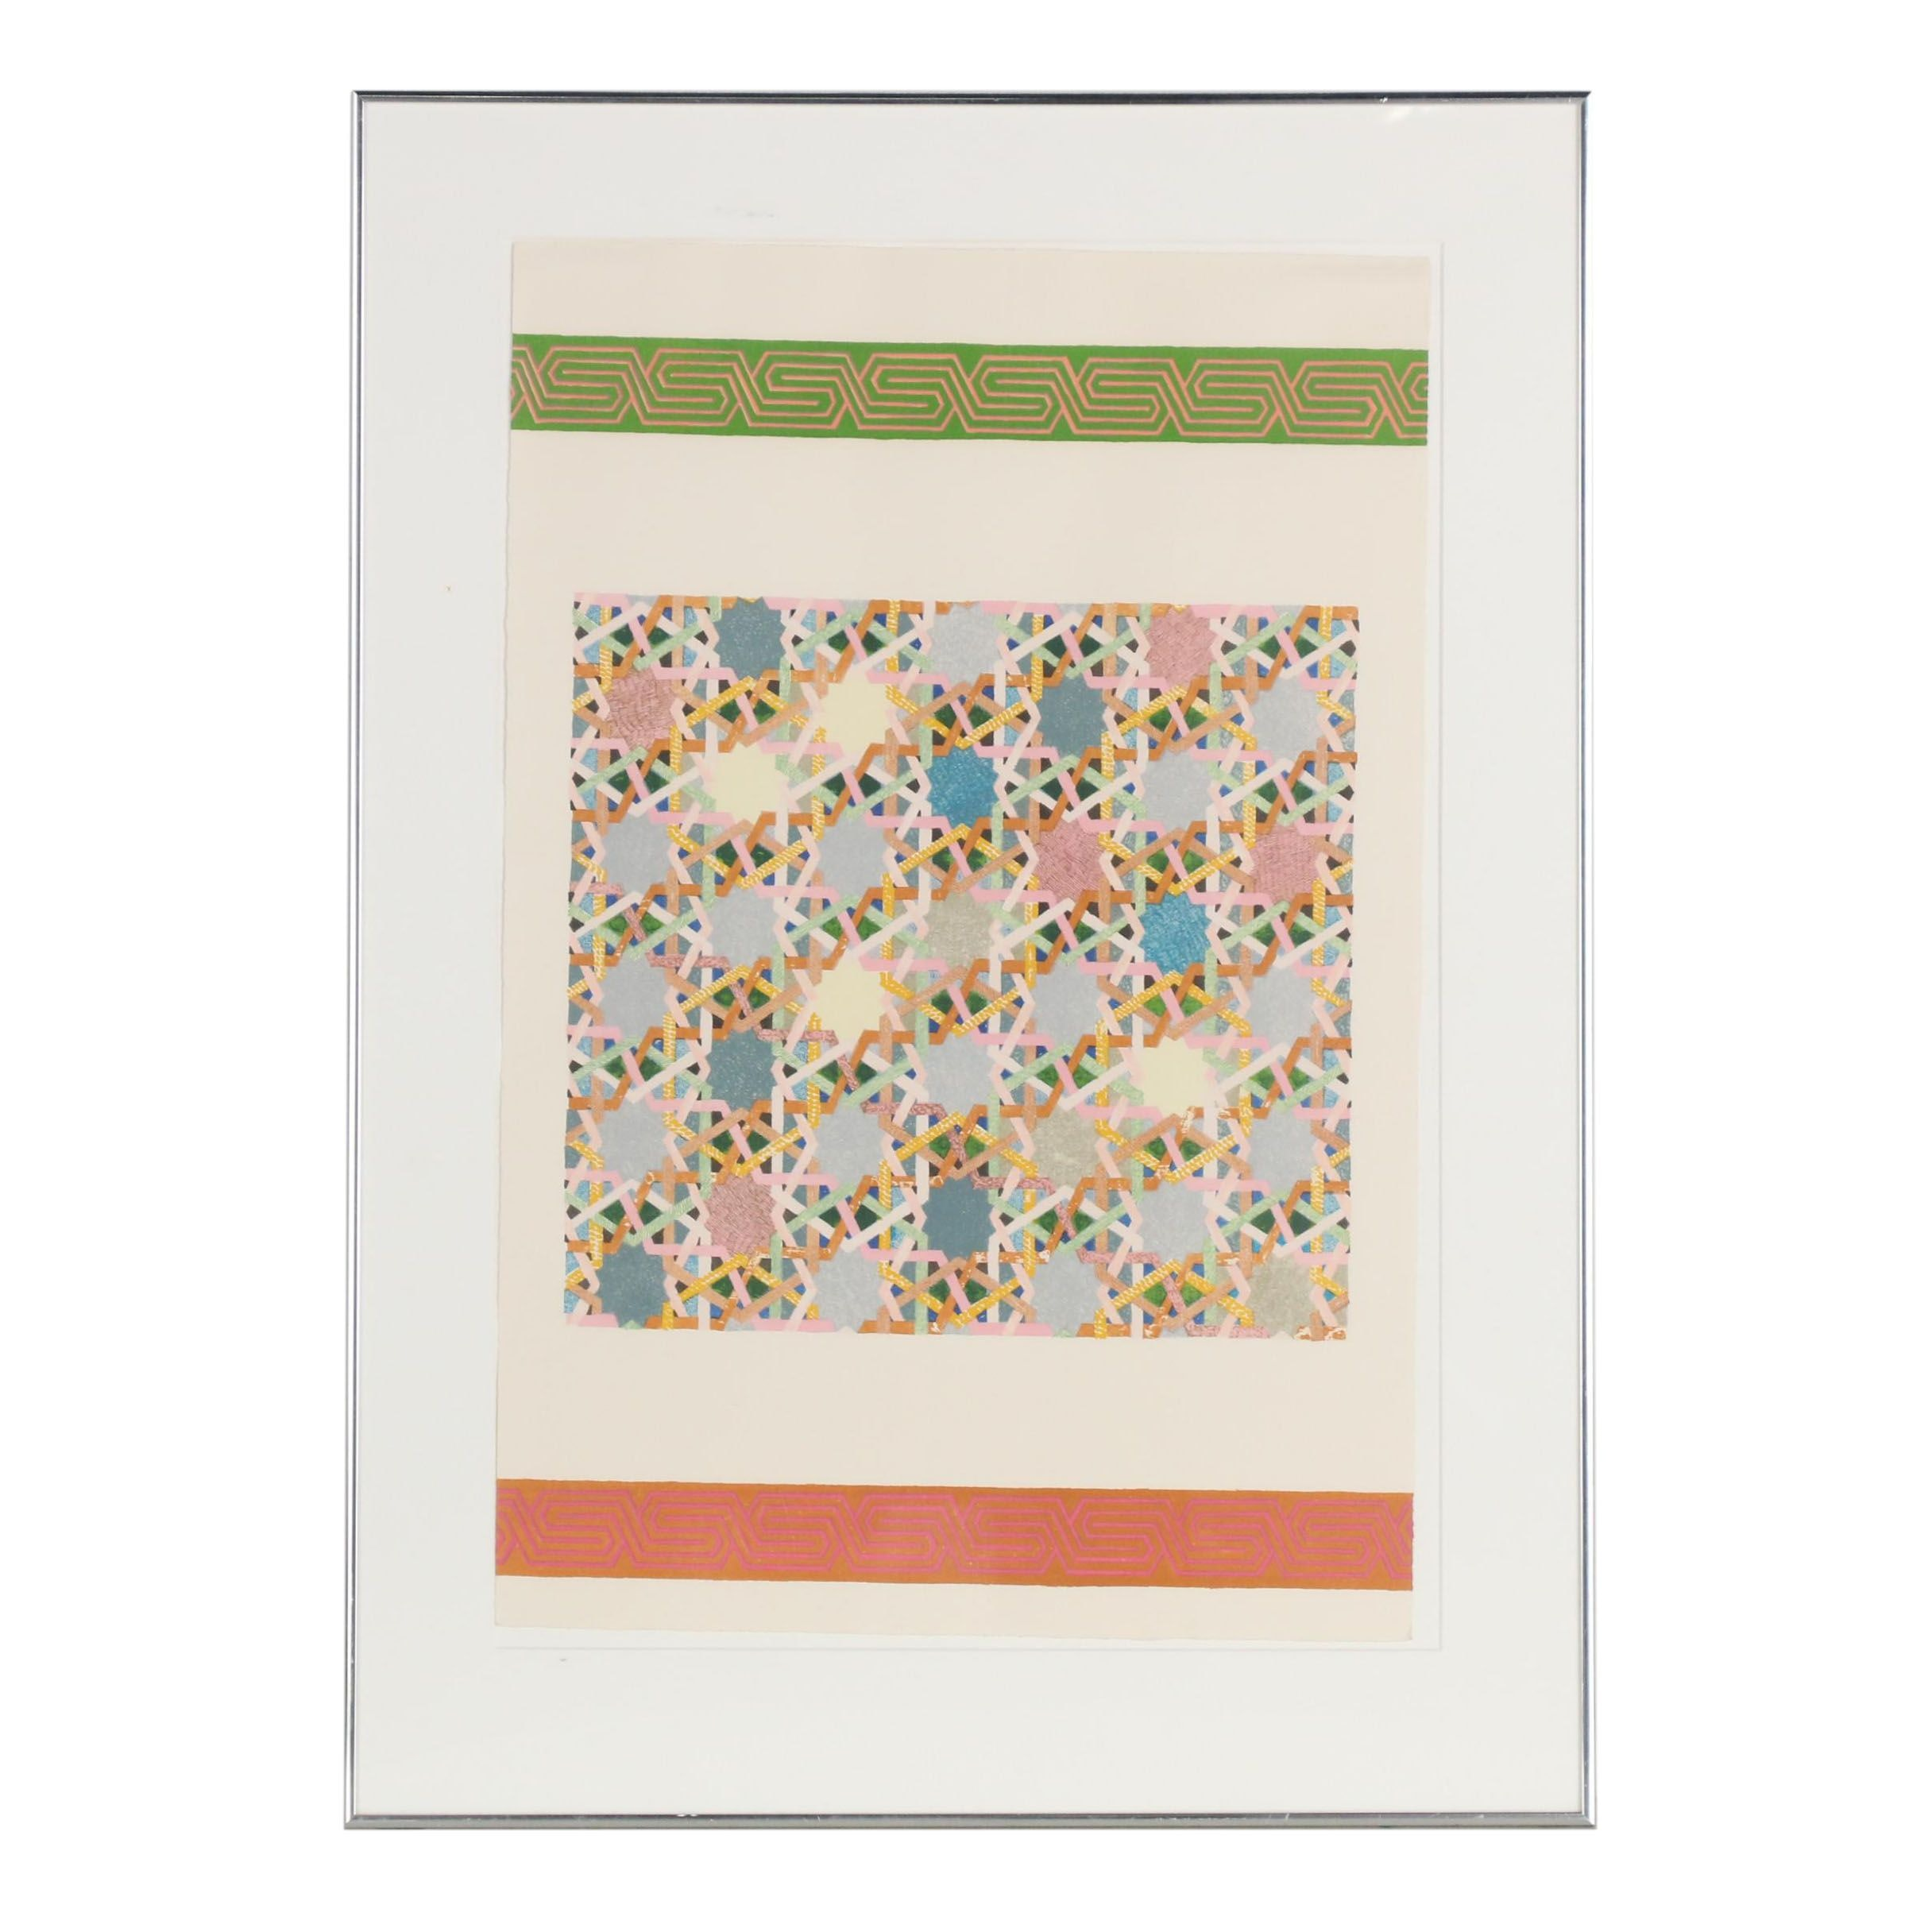 """Joyce Kozloff 1977 Lithograph """"Pictures and Borders I"""""""